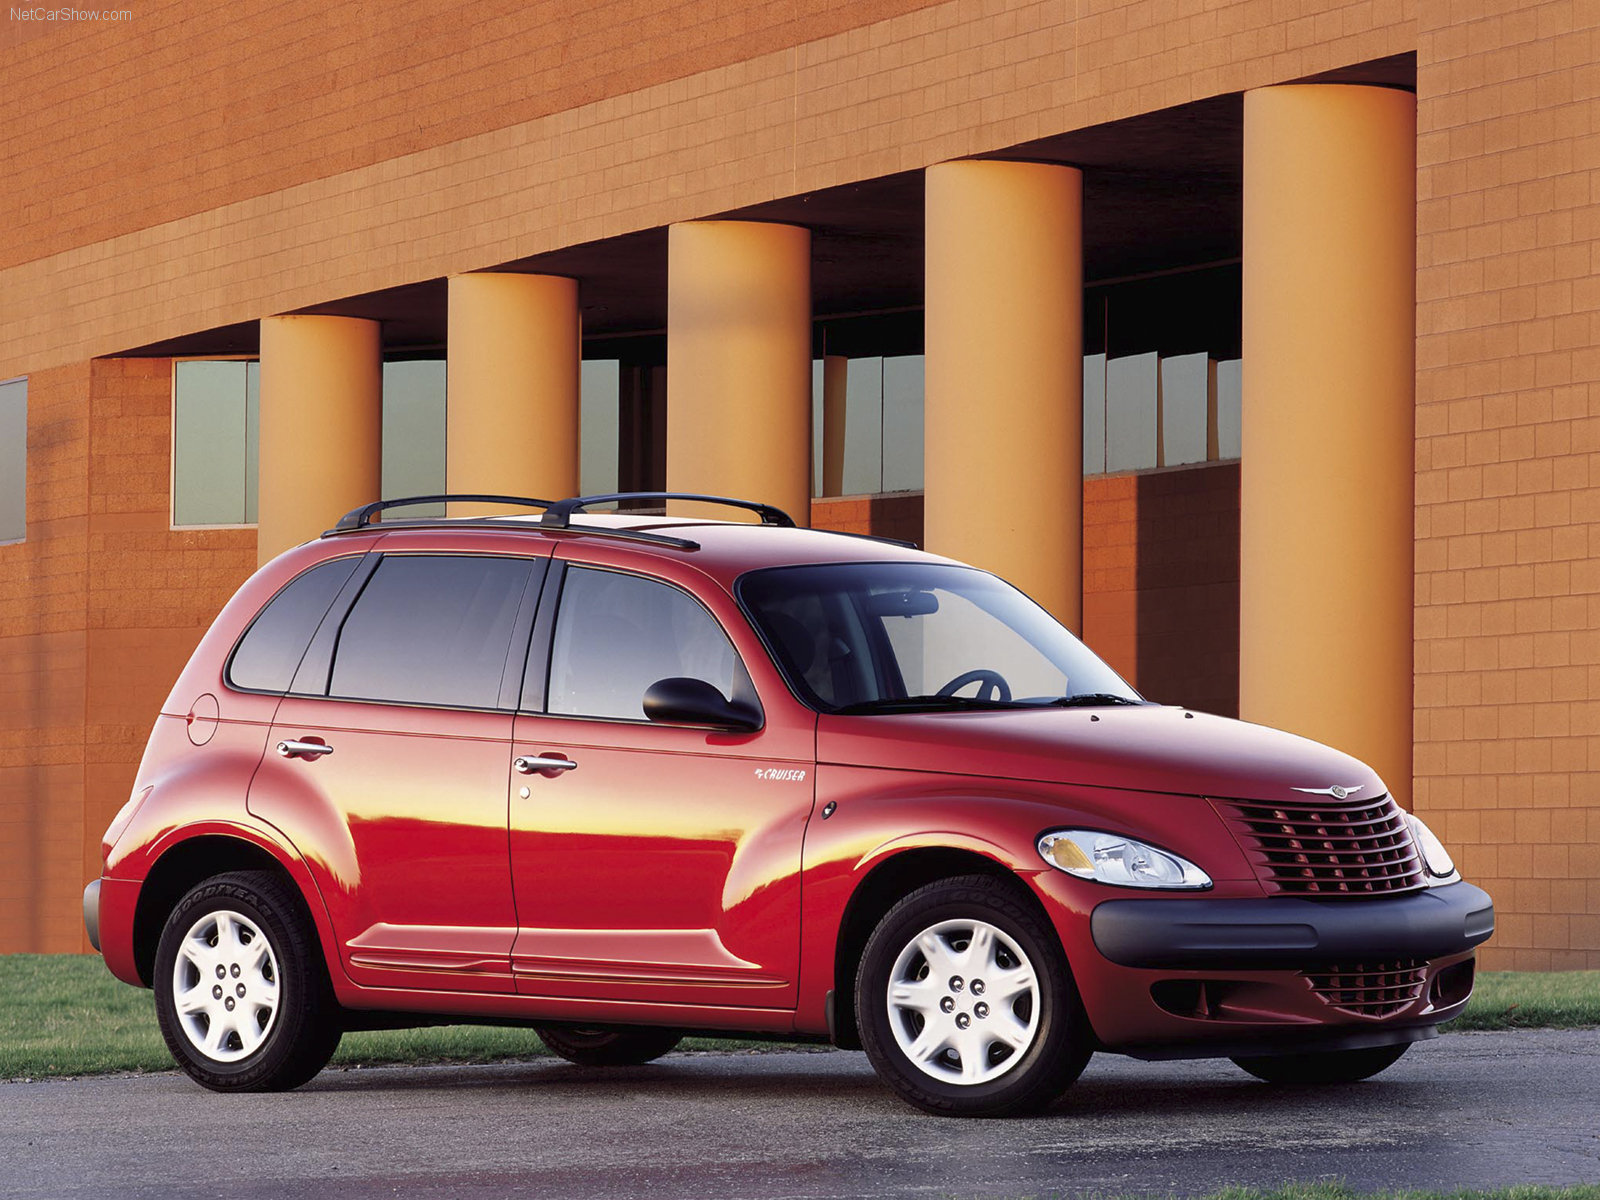 2001 Chrysler Pt Cruiser #1